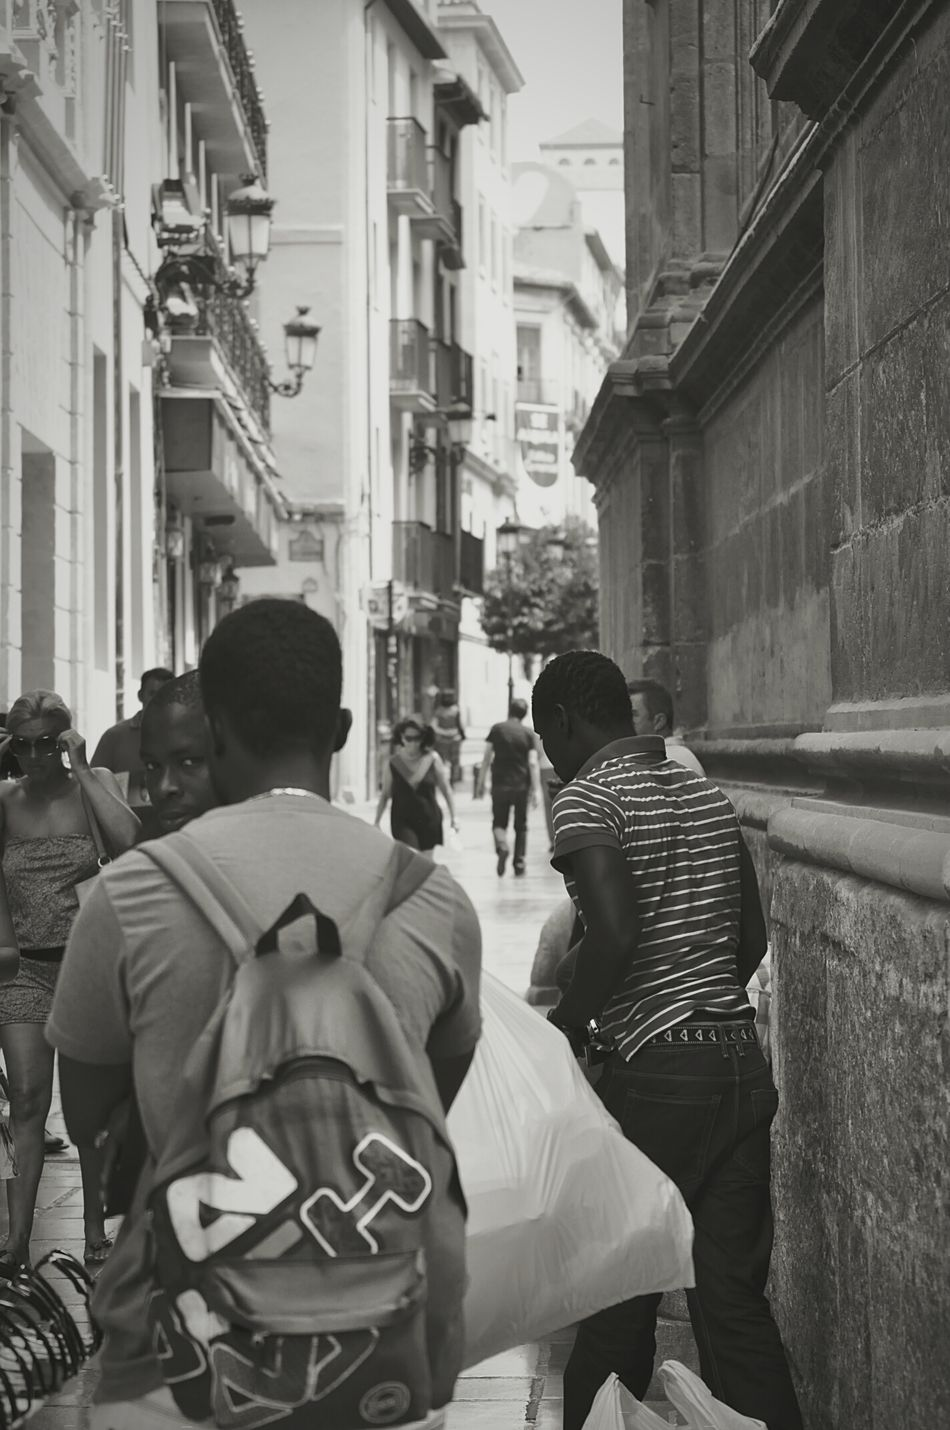 B&w Street Photography Street Workers Workersonduty Workers Migrant Workers Blackandwhite Photography AfricansImmigrants Streetlife BW_photography Hardlife